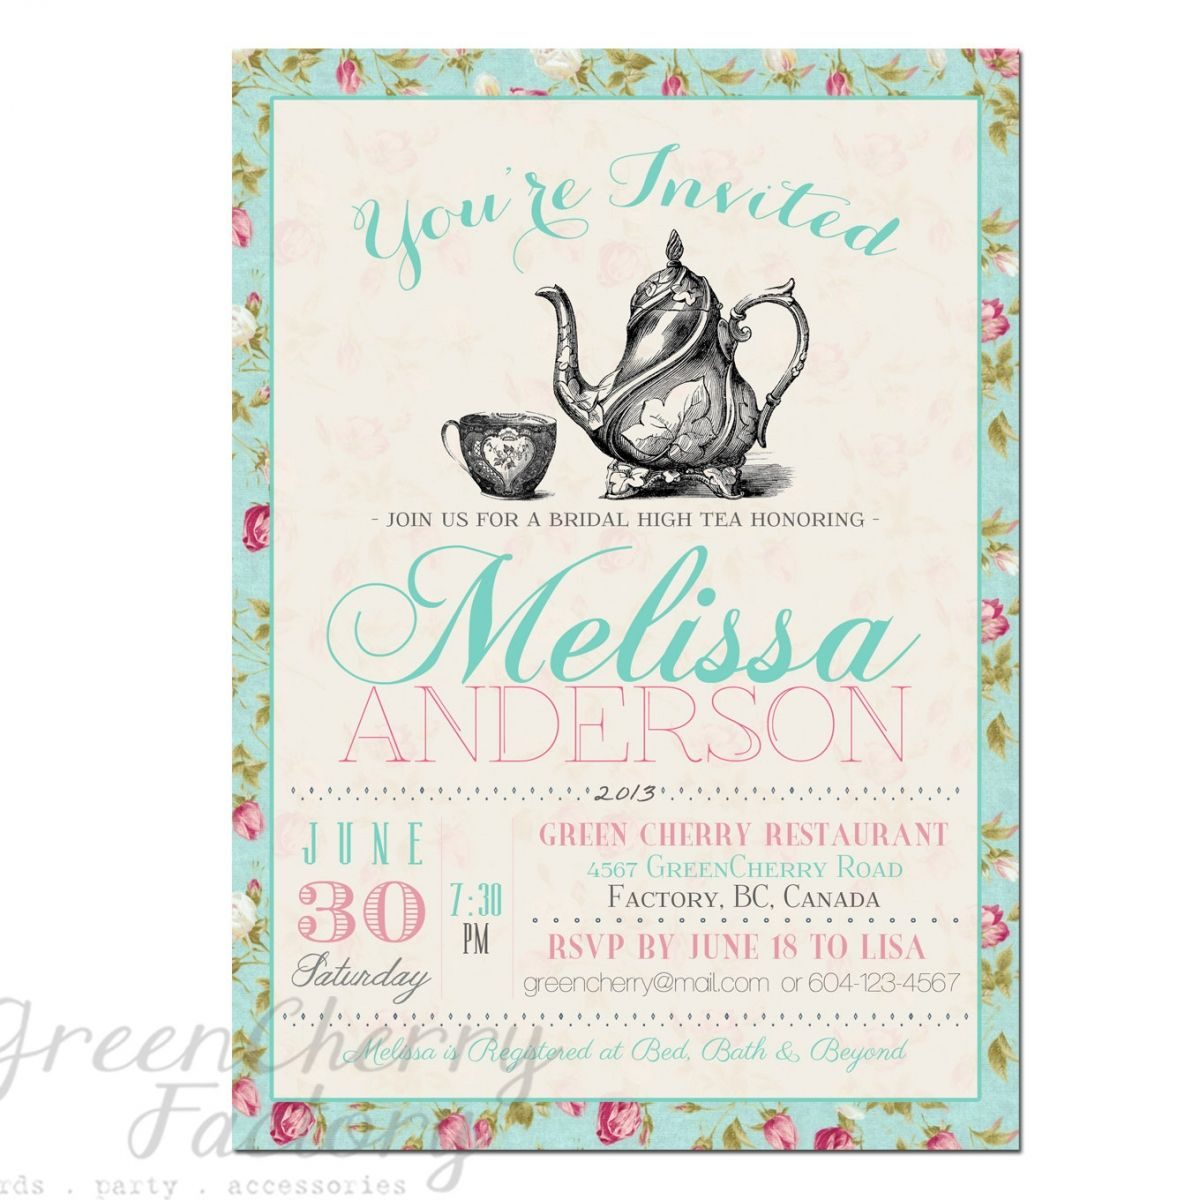 Tea Party Invitation Templates To Print | Free Printable Tea Party - Free Printable Kitchen Tea Invitation Templates